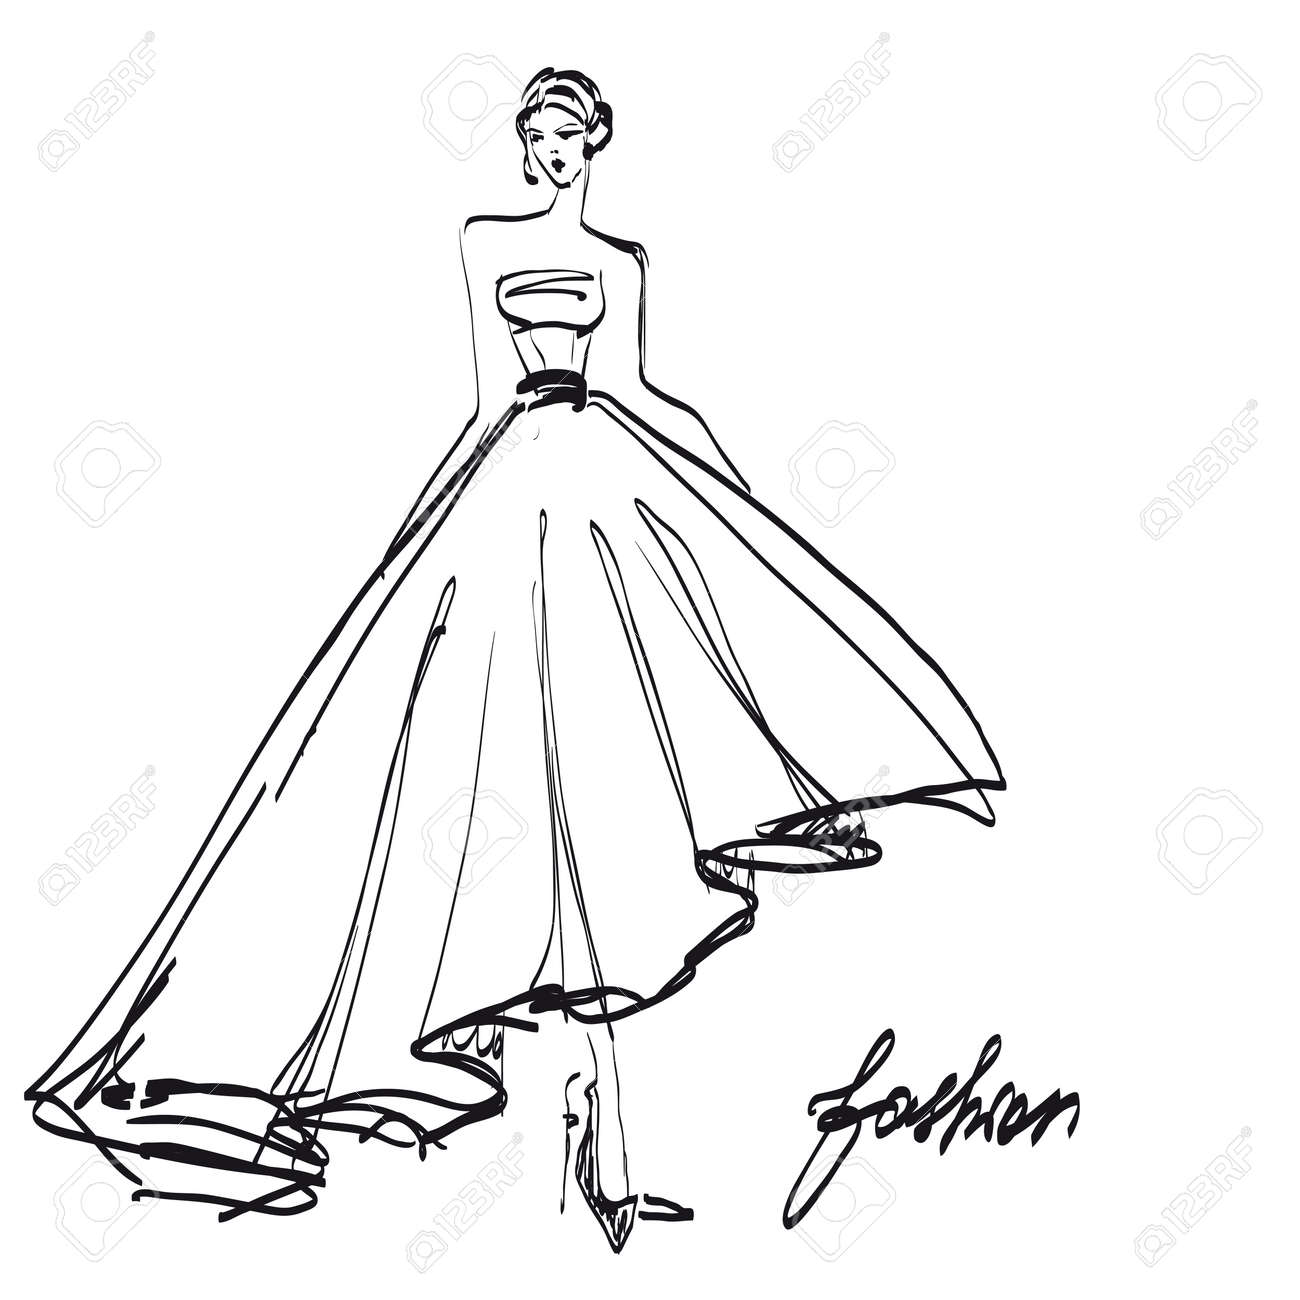 Wedding Dress Design Black And White Fashion Sketch Stock Photo Picture And Royalty Free Image Image 88444979